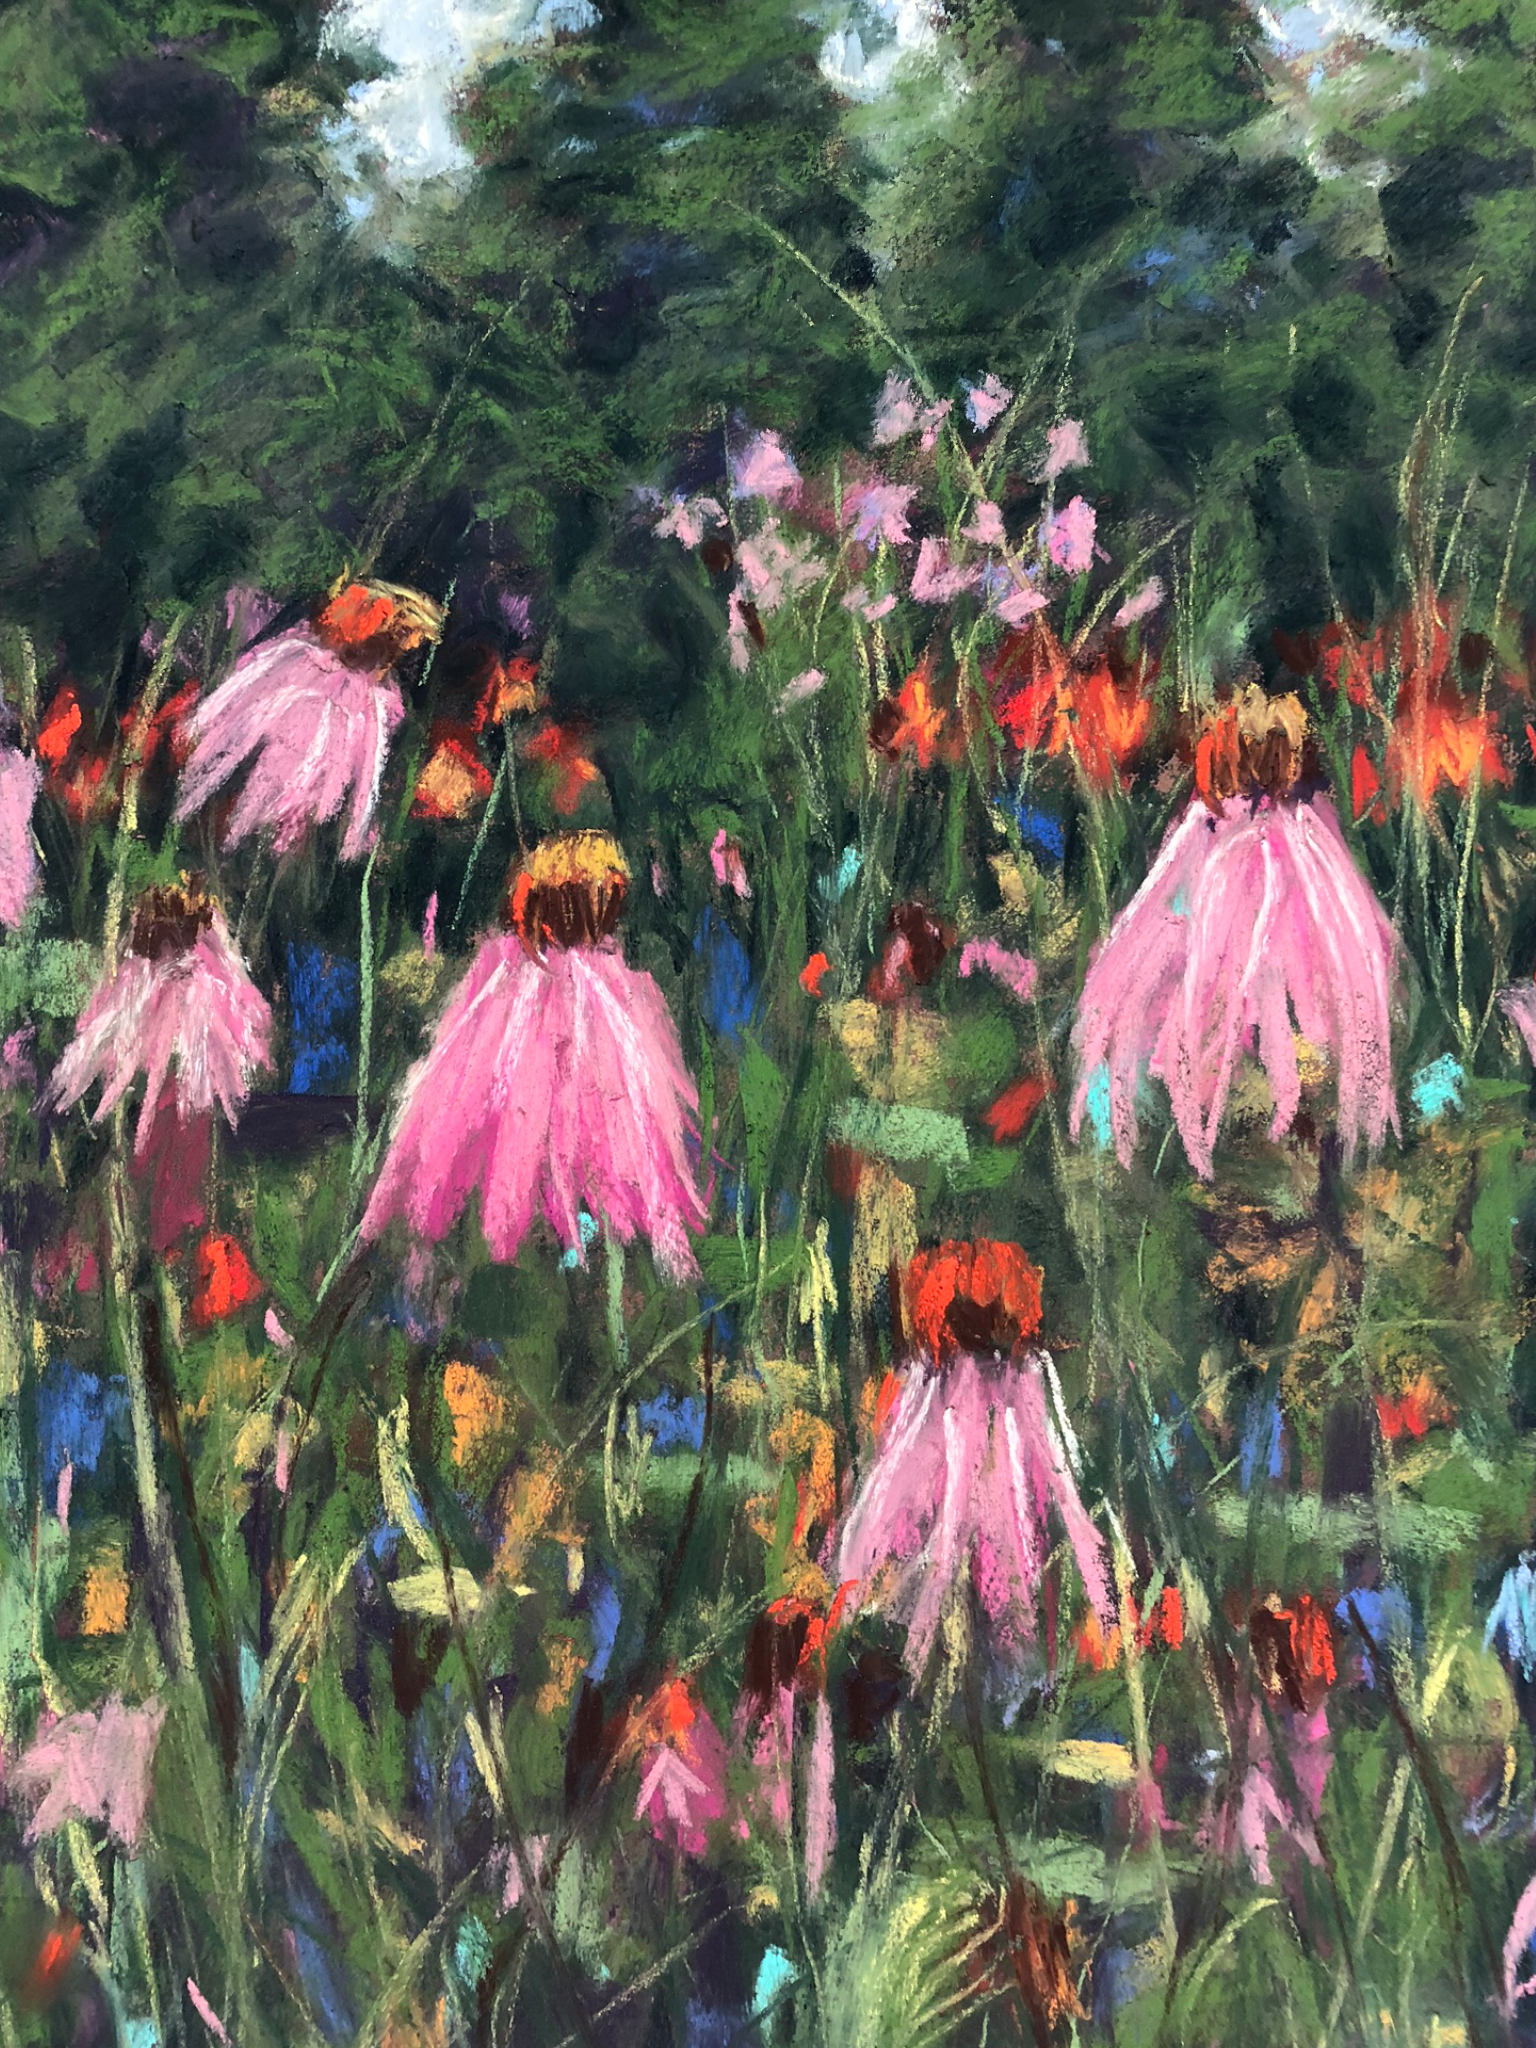 Floral Heaven - NEWMedium/Materials used: Soft Pastels on Canson Mi-Teintes paper.Measurements (framed): 48cm x 36cmMeasurements (Unframed): 42cm x 30cm